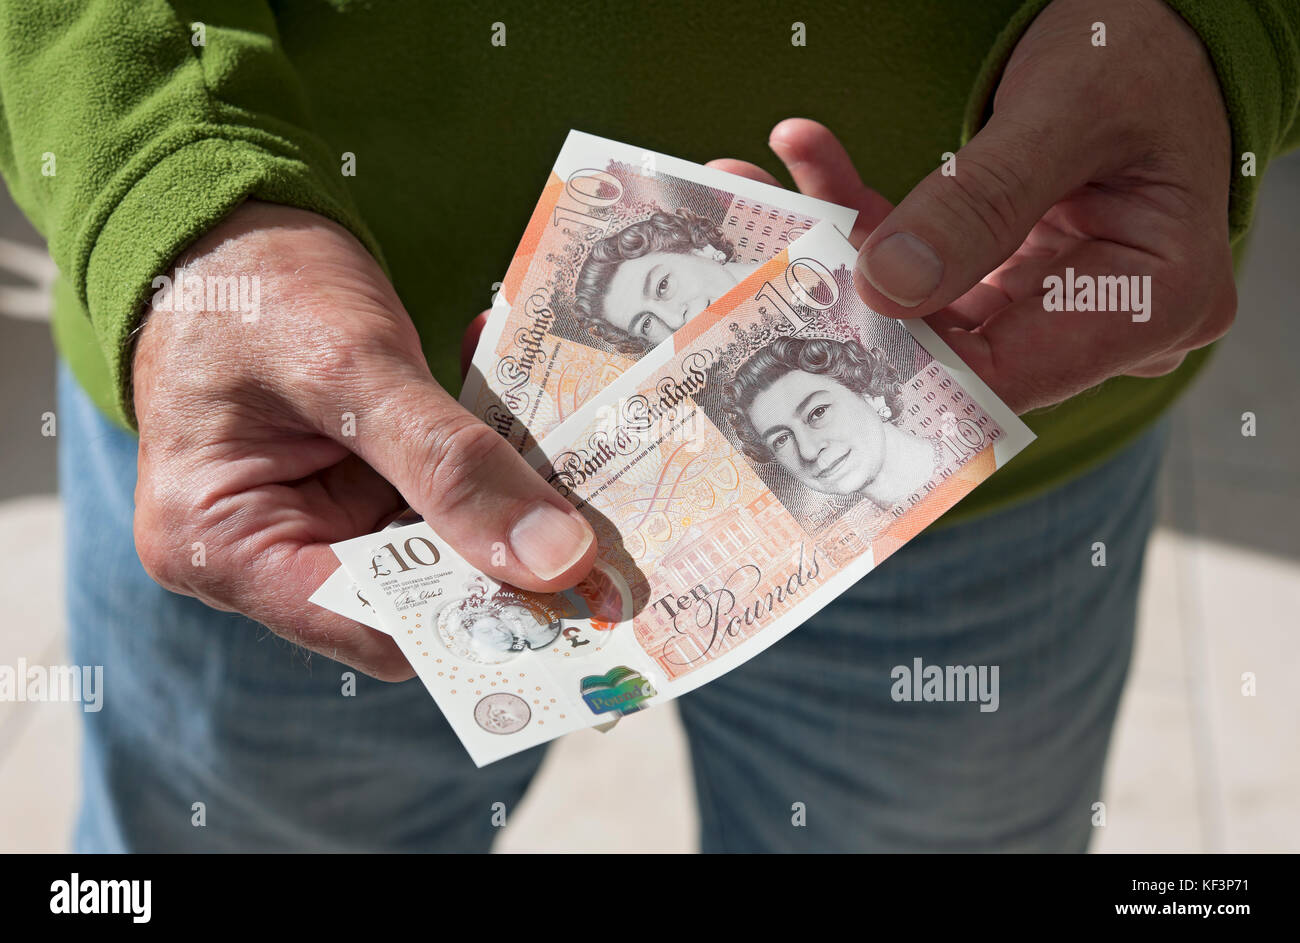 Man holding new polymer ten pound notes England UK United Kingdom GB Great Britain - Stock Image